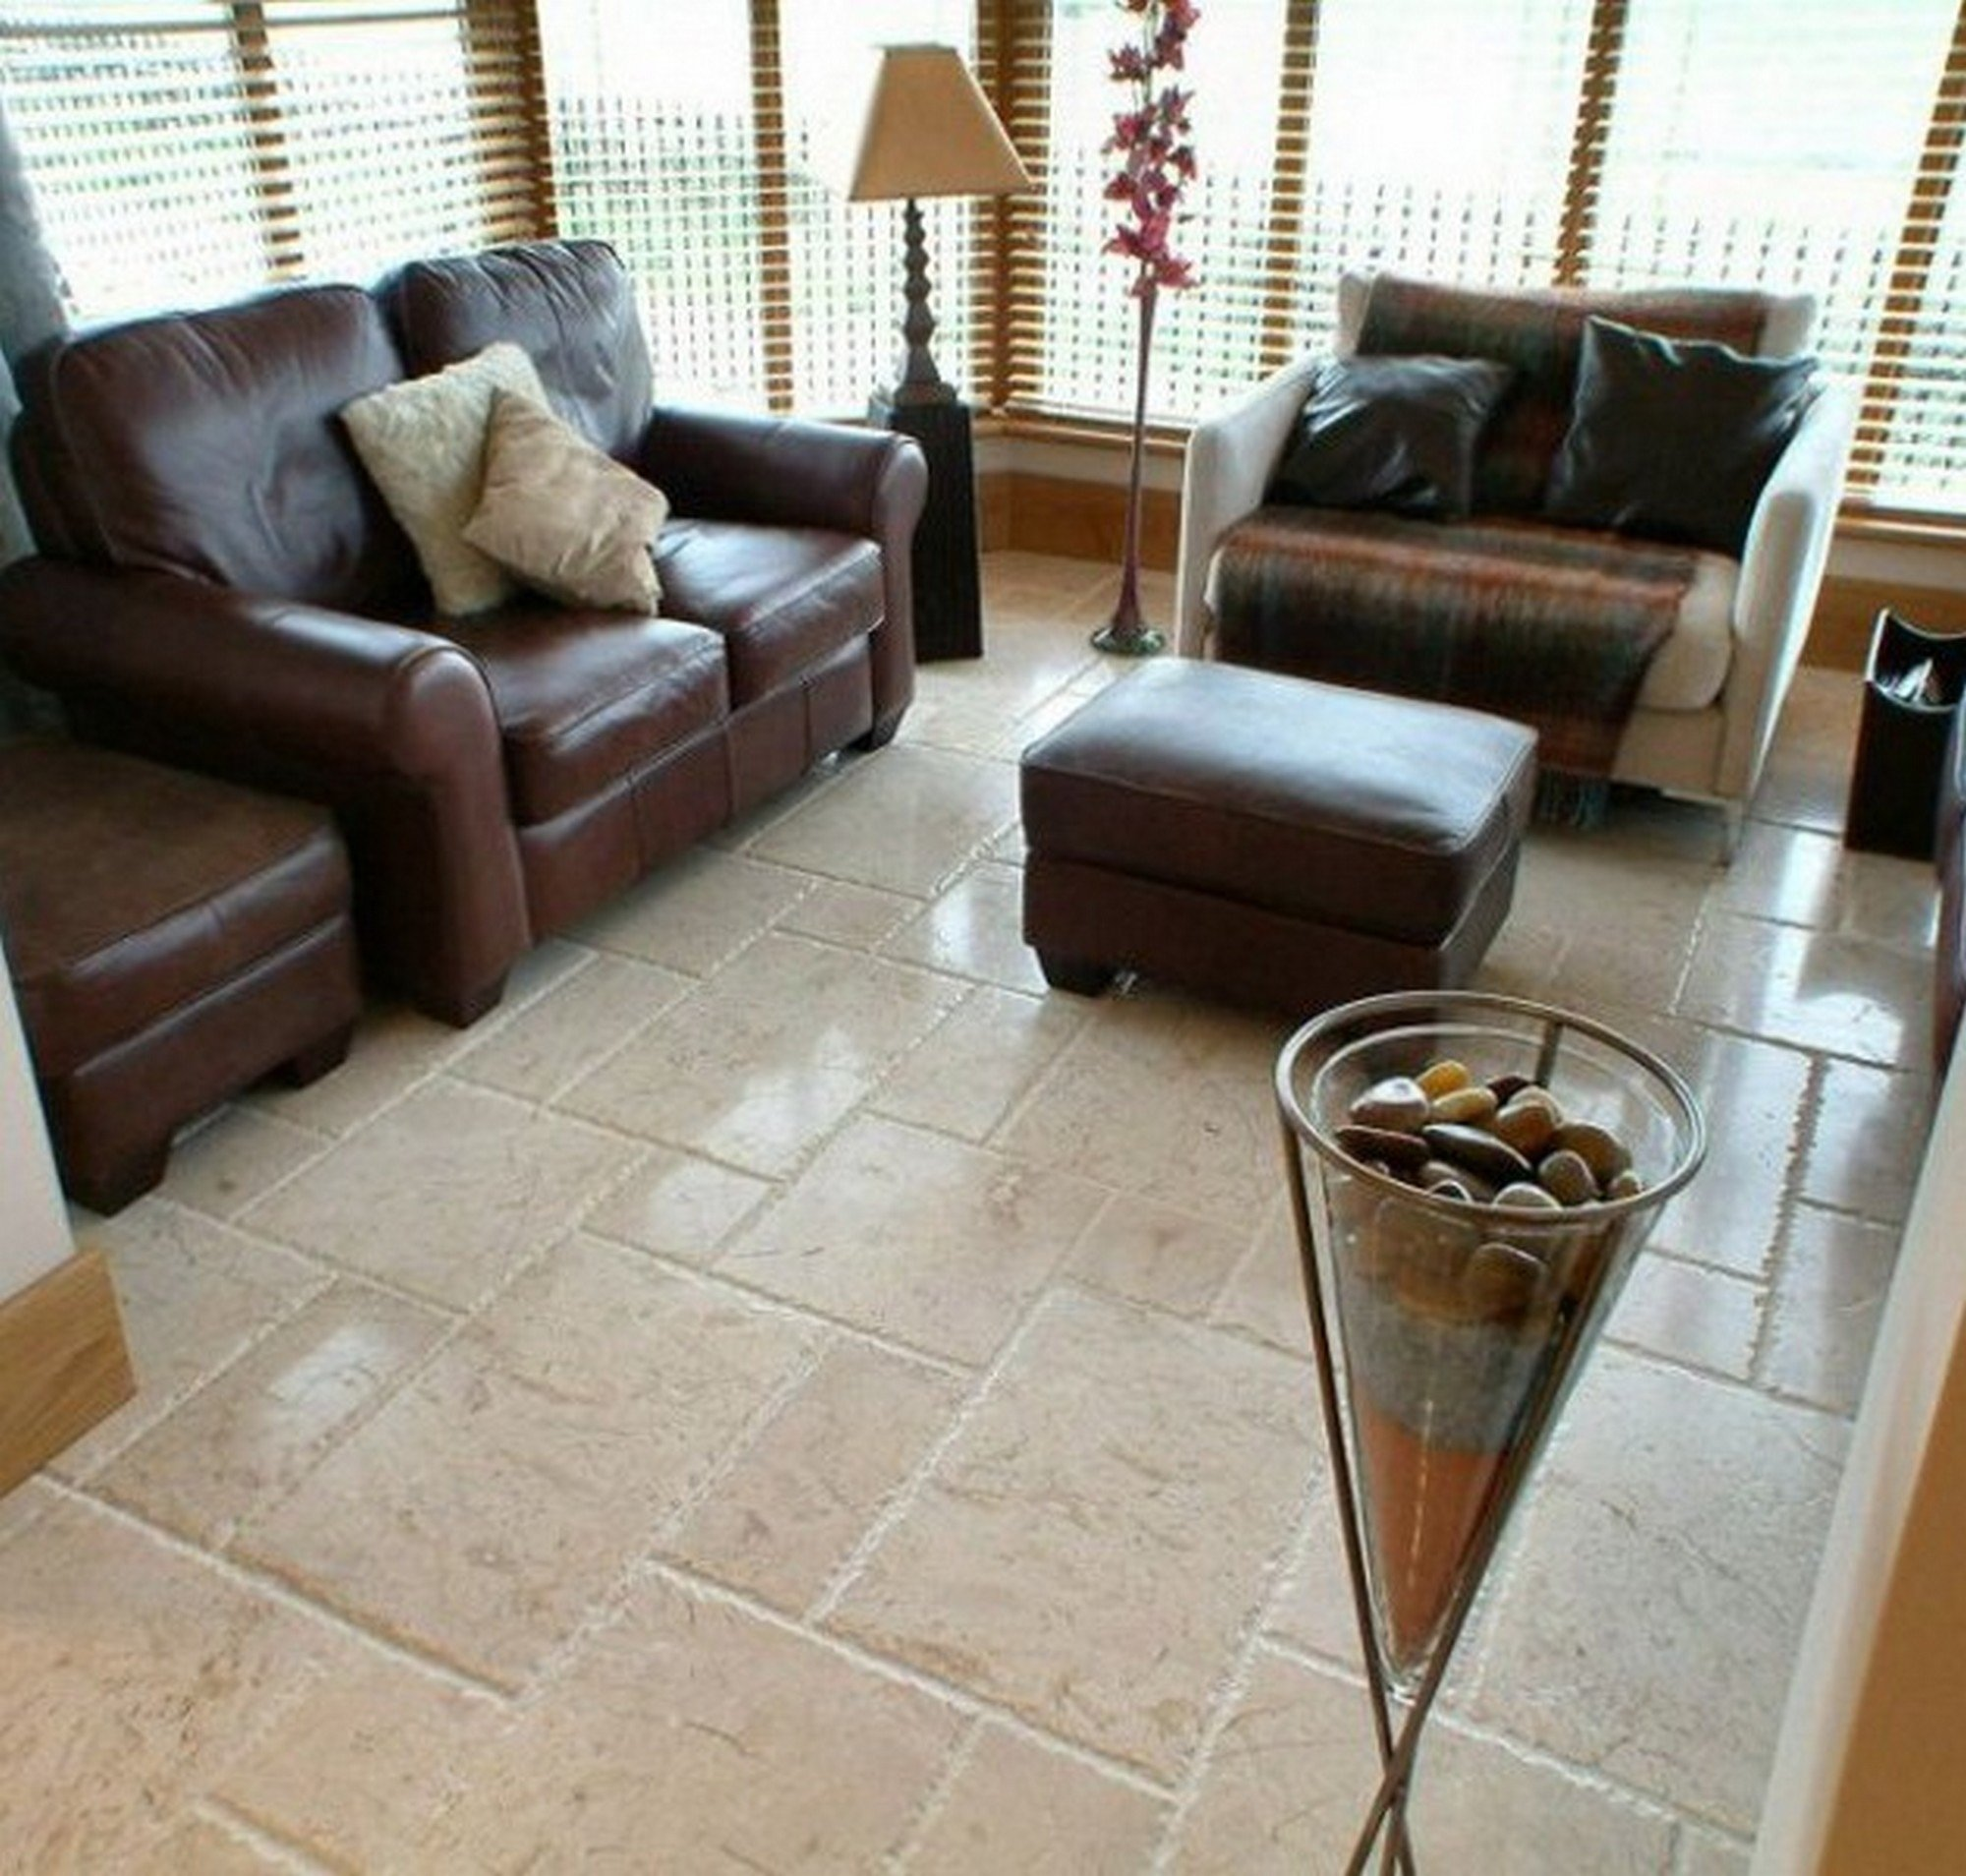 10 Unique Flooring Ideas For Family Room tile flooring ideas living room flooring designs